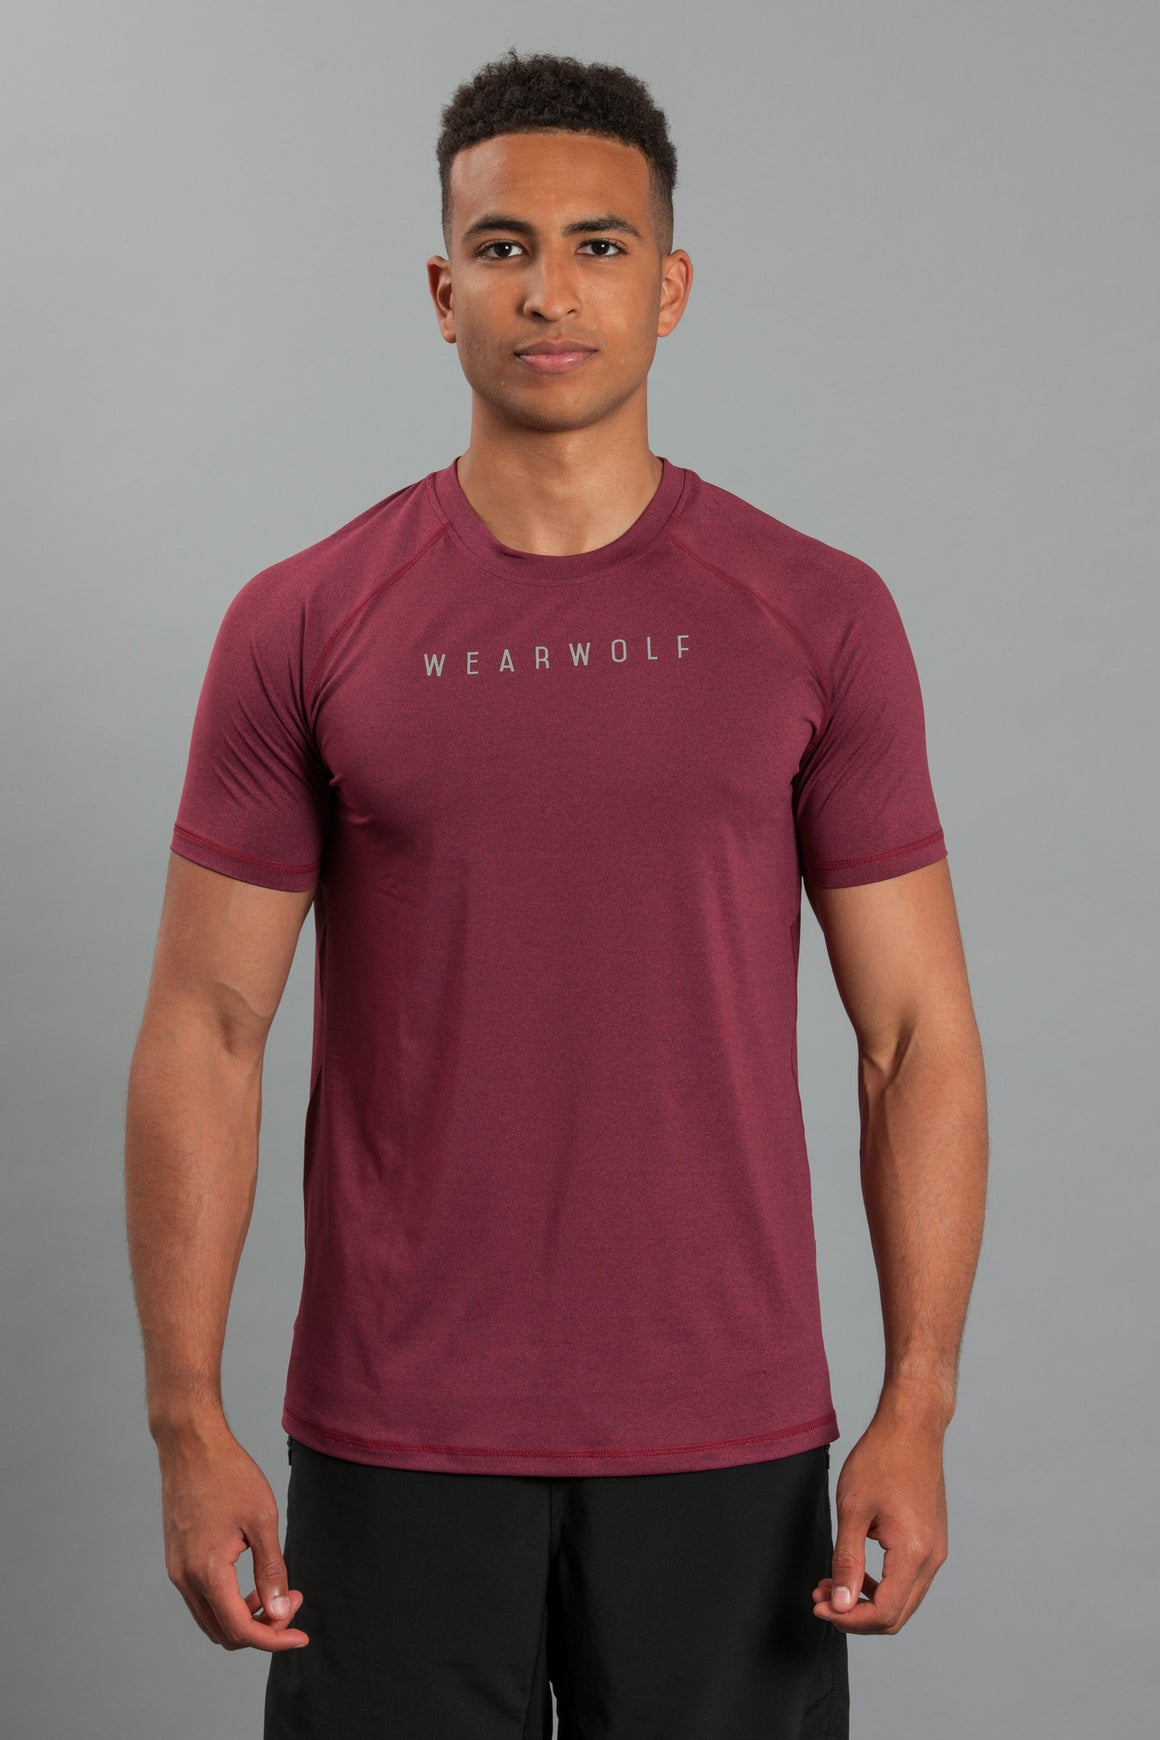 WearWolf AirTech T-Shirt - Burgundy - WearWolf Clothing UK